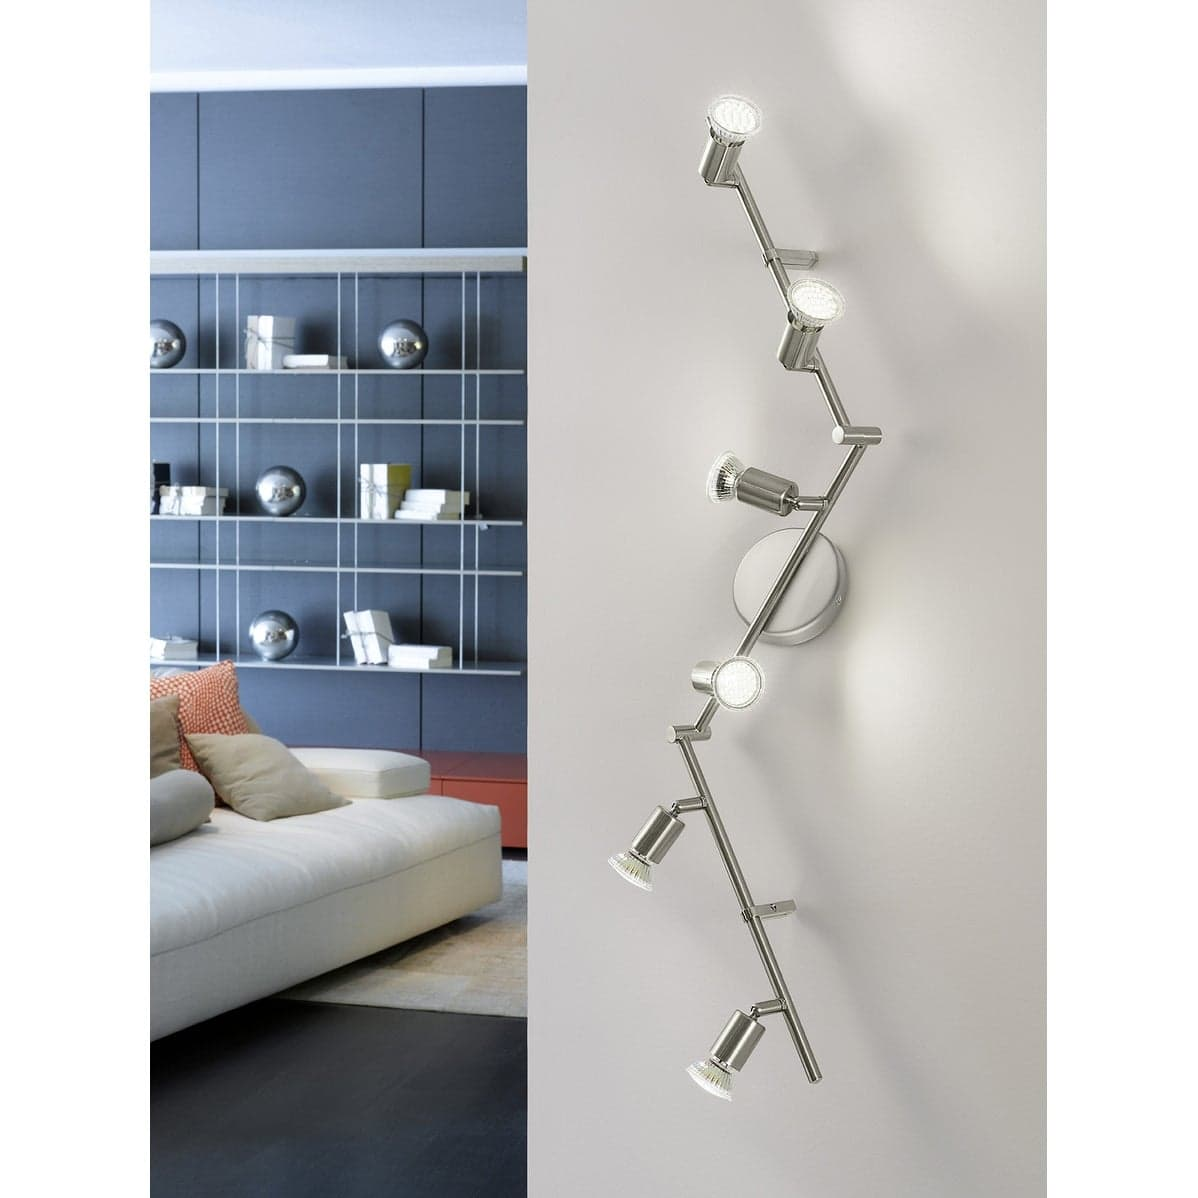 Try Using Track Lighting on The Walls